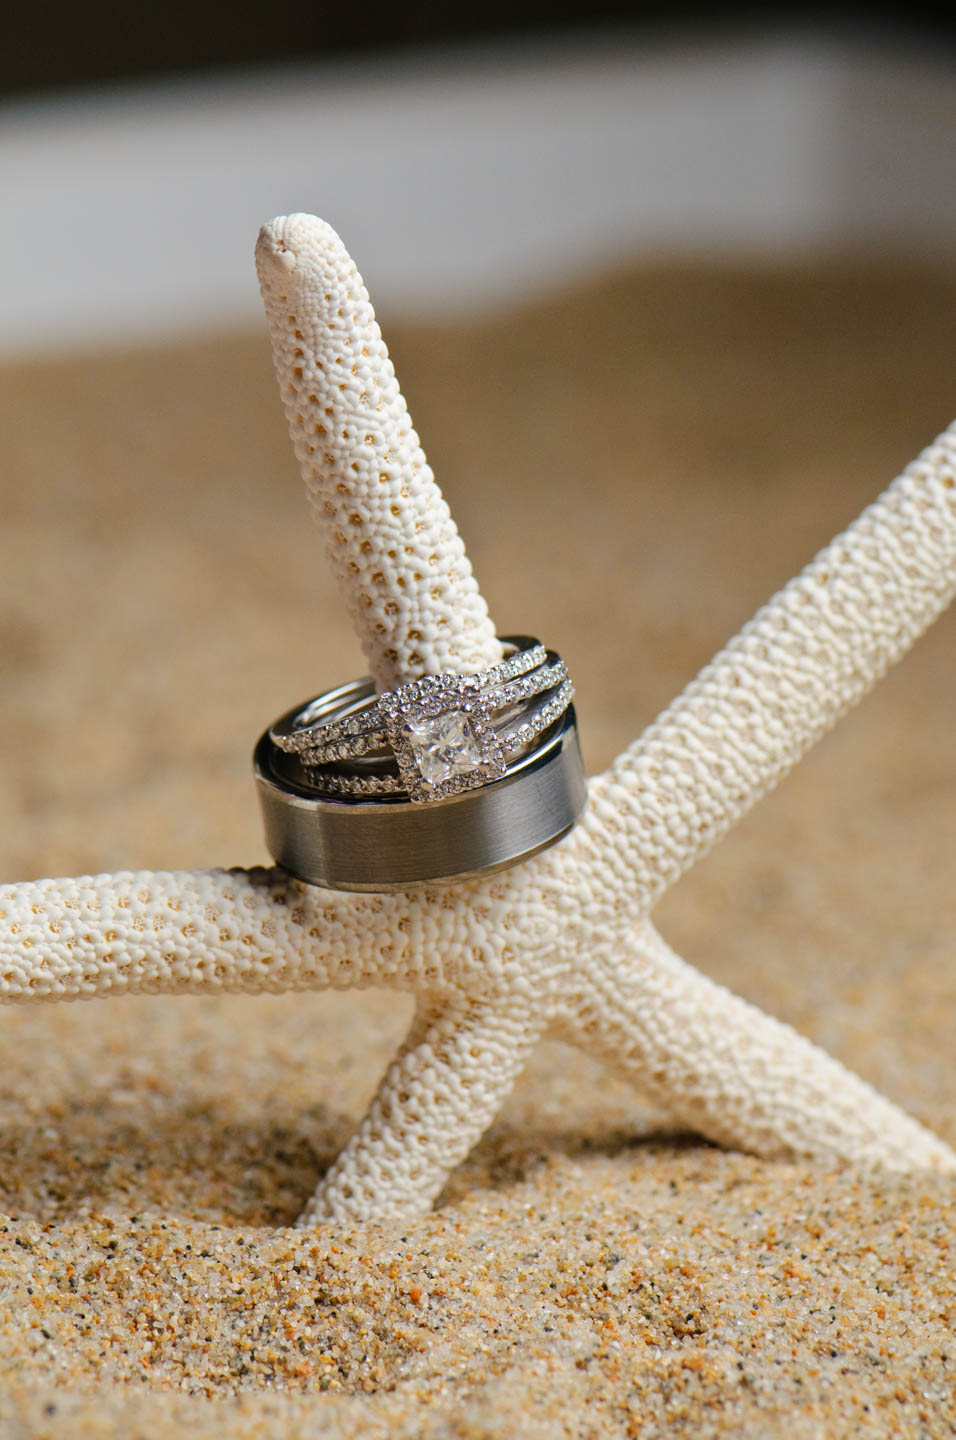 puerto for is i a in fun took lyndsay marshalls island idea shot rings ring during and wedding beach rico culebra this pin photograph on